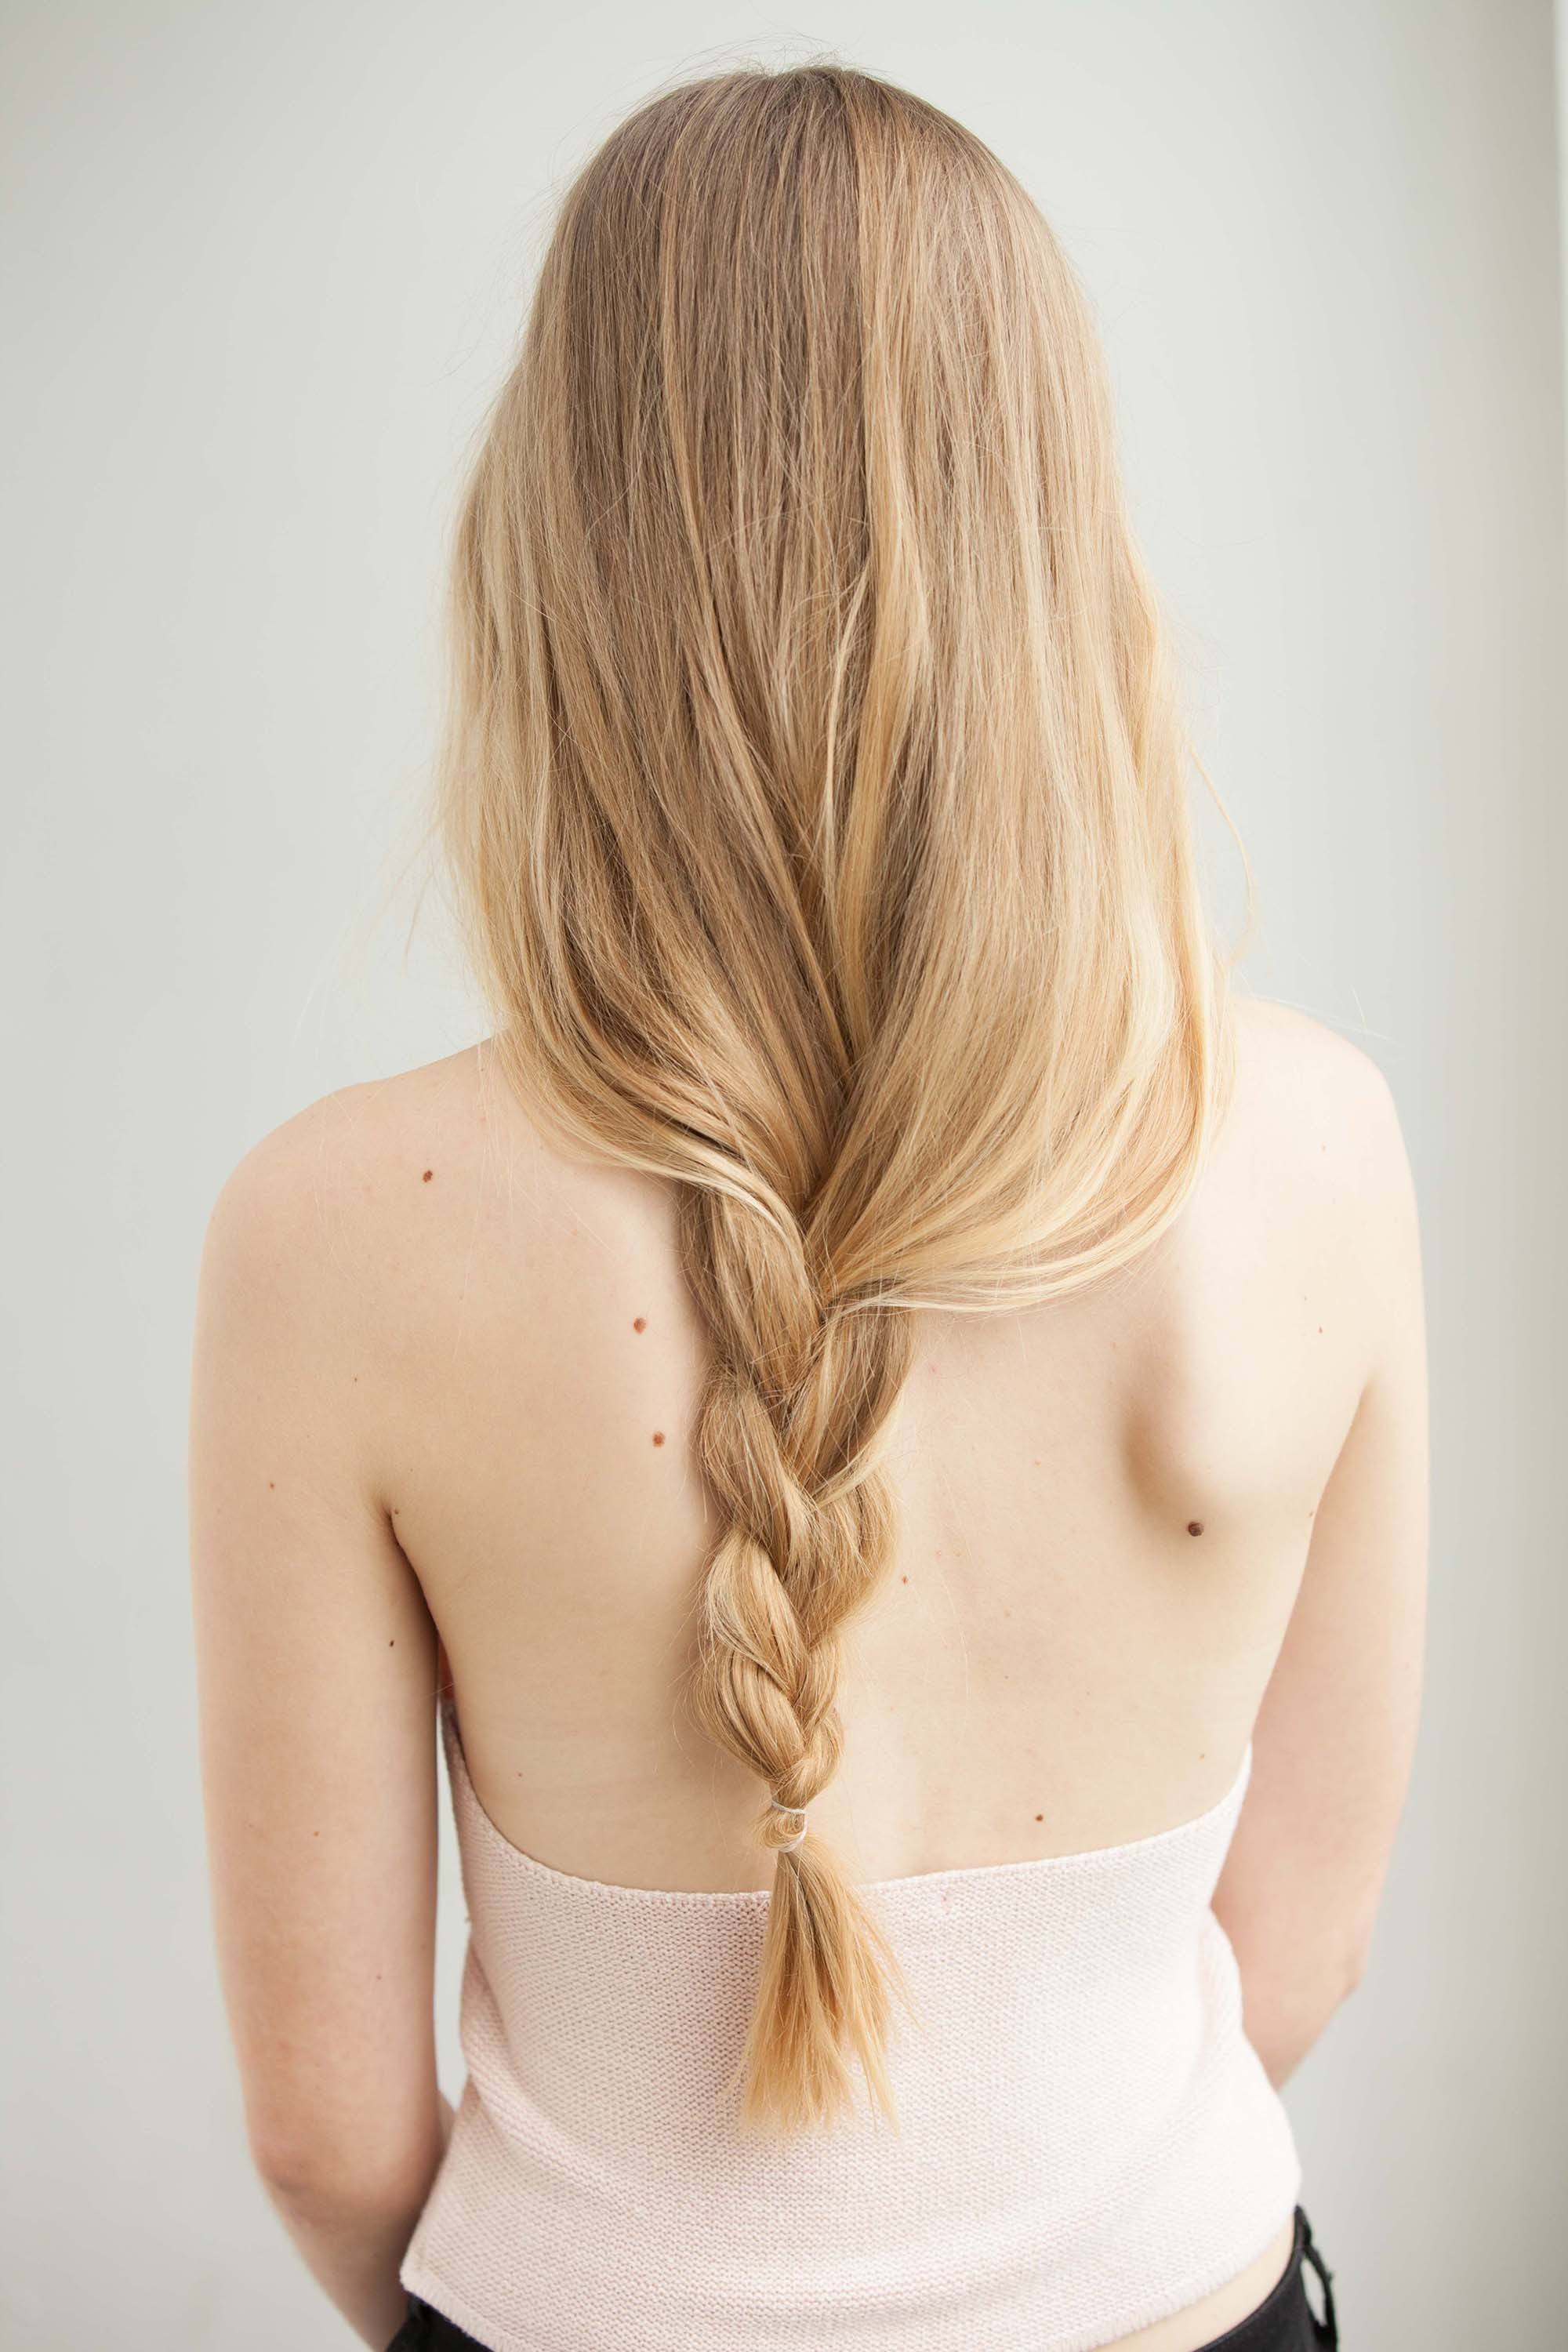 6 Reasons Why Loose Plait Hairstyles Should Be On Your Radar